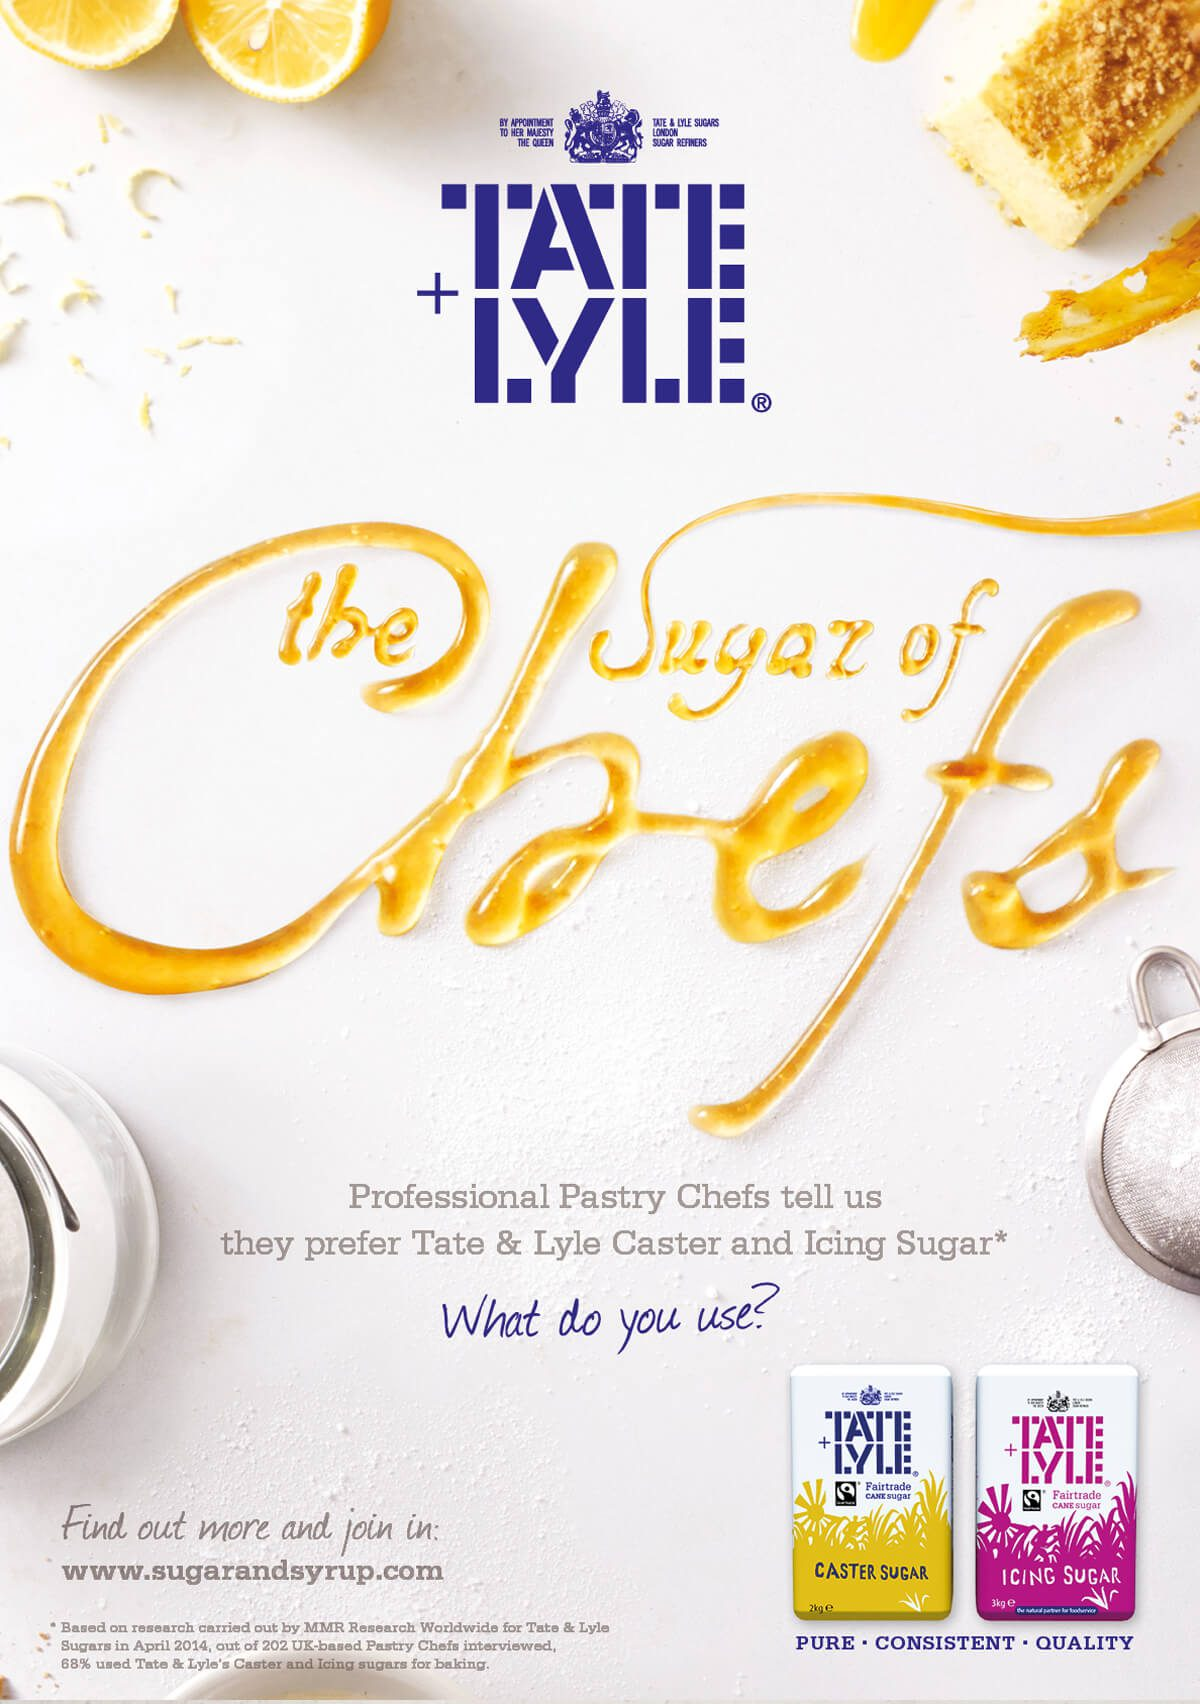 tate-and-lyle-the-sugar-of-chefs-advert.jpg#asset:1150